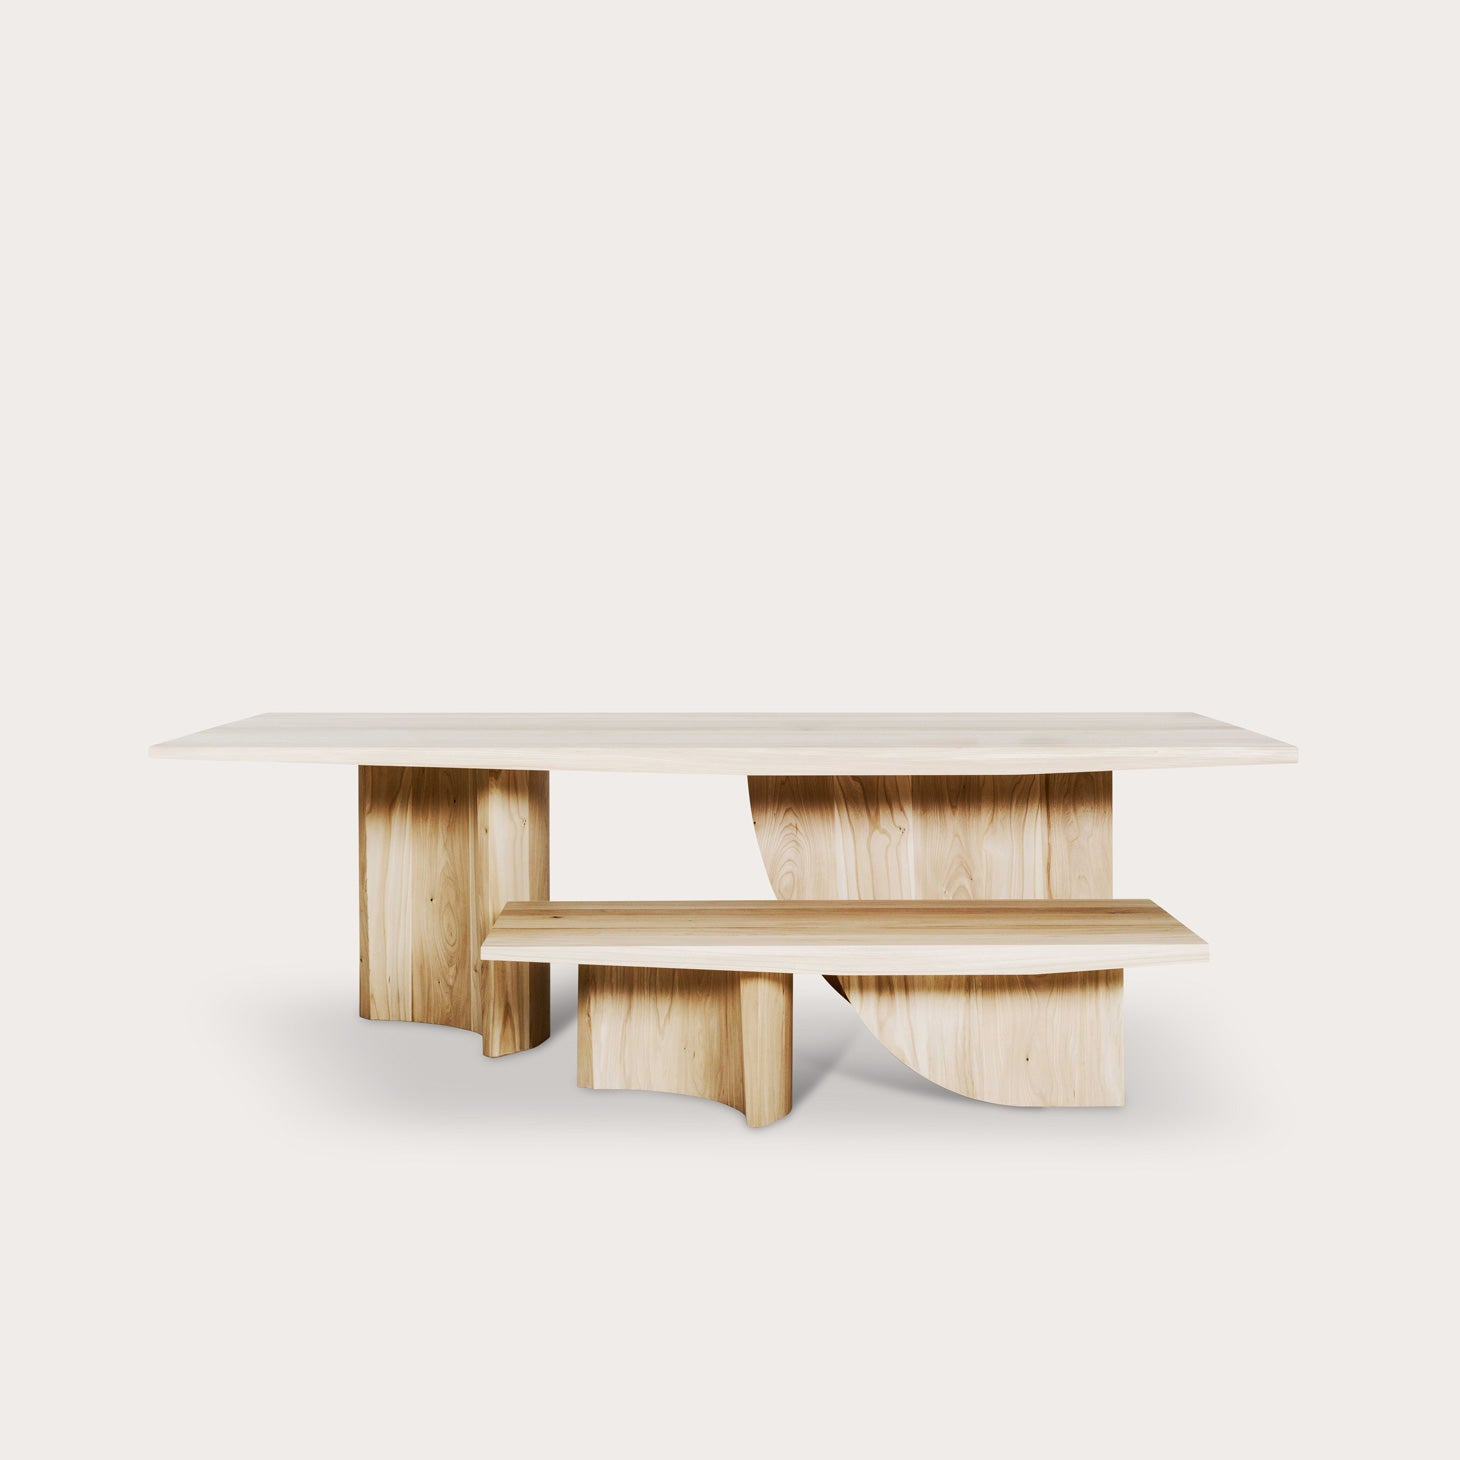 TEO Table Tables Christophe Delcourt Designer Furniture Sku: 008-230-10463